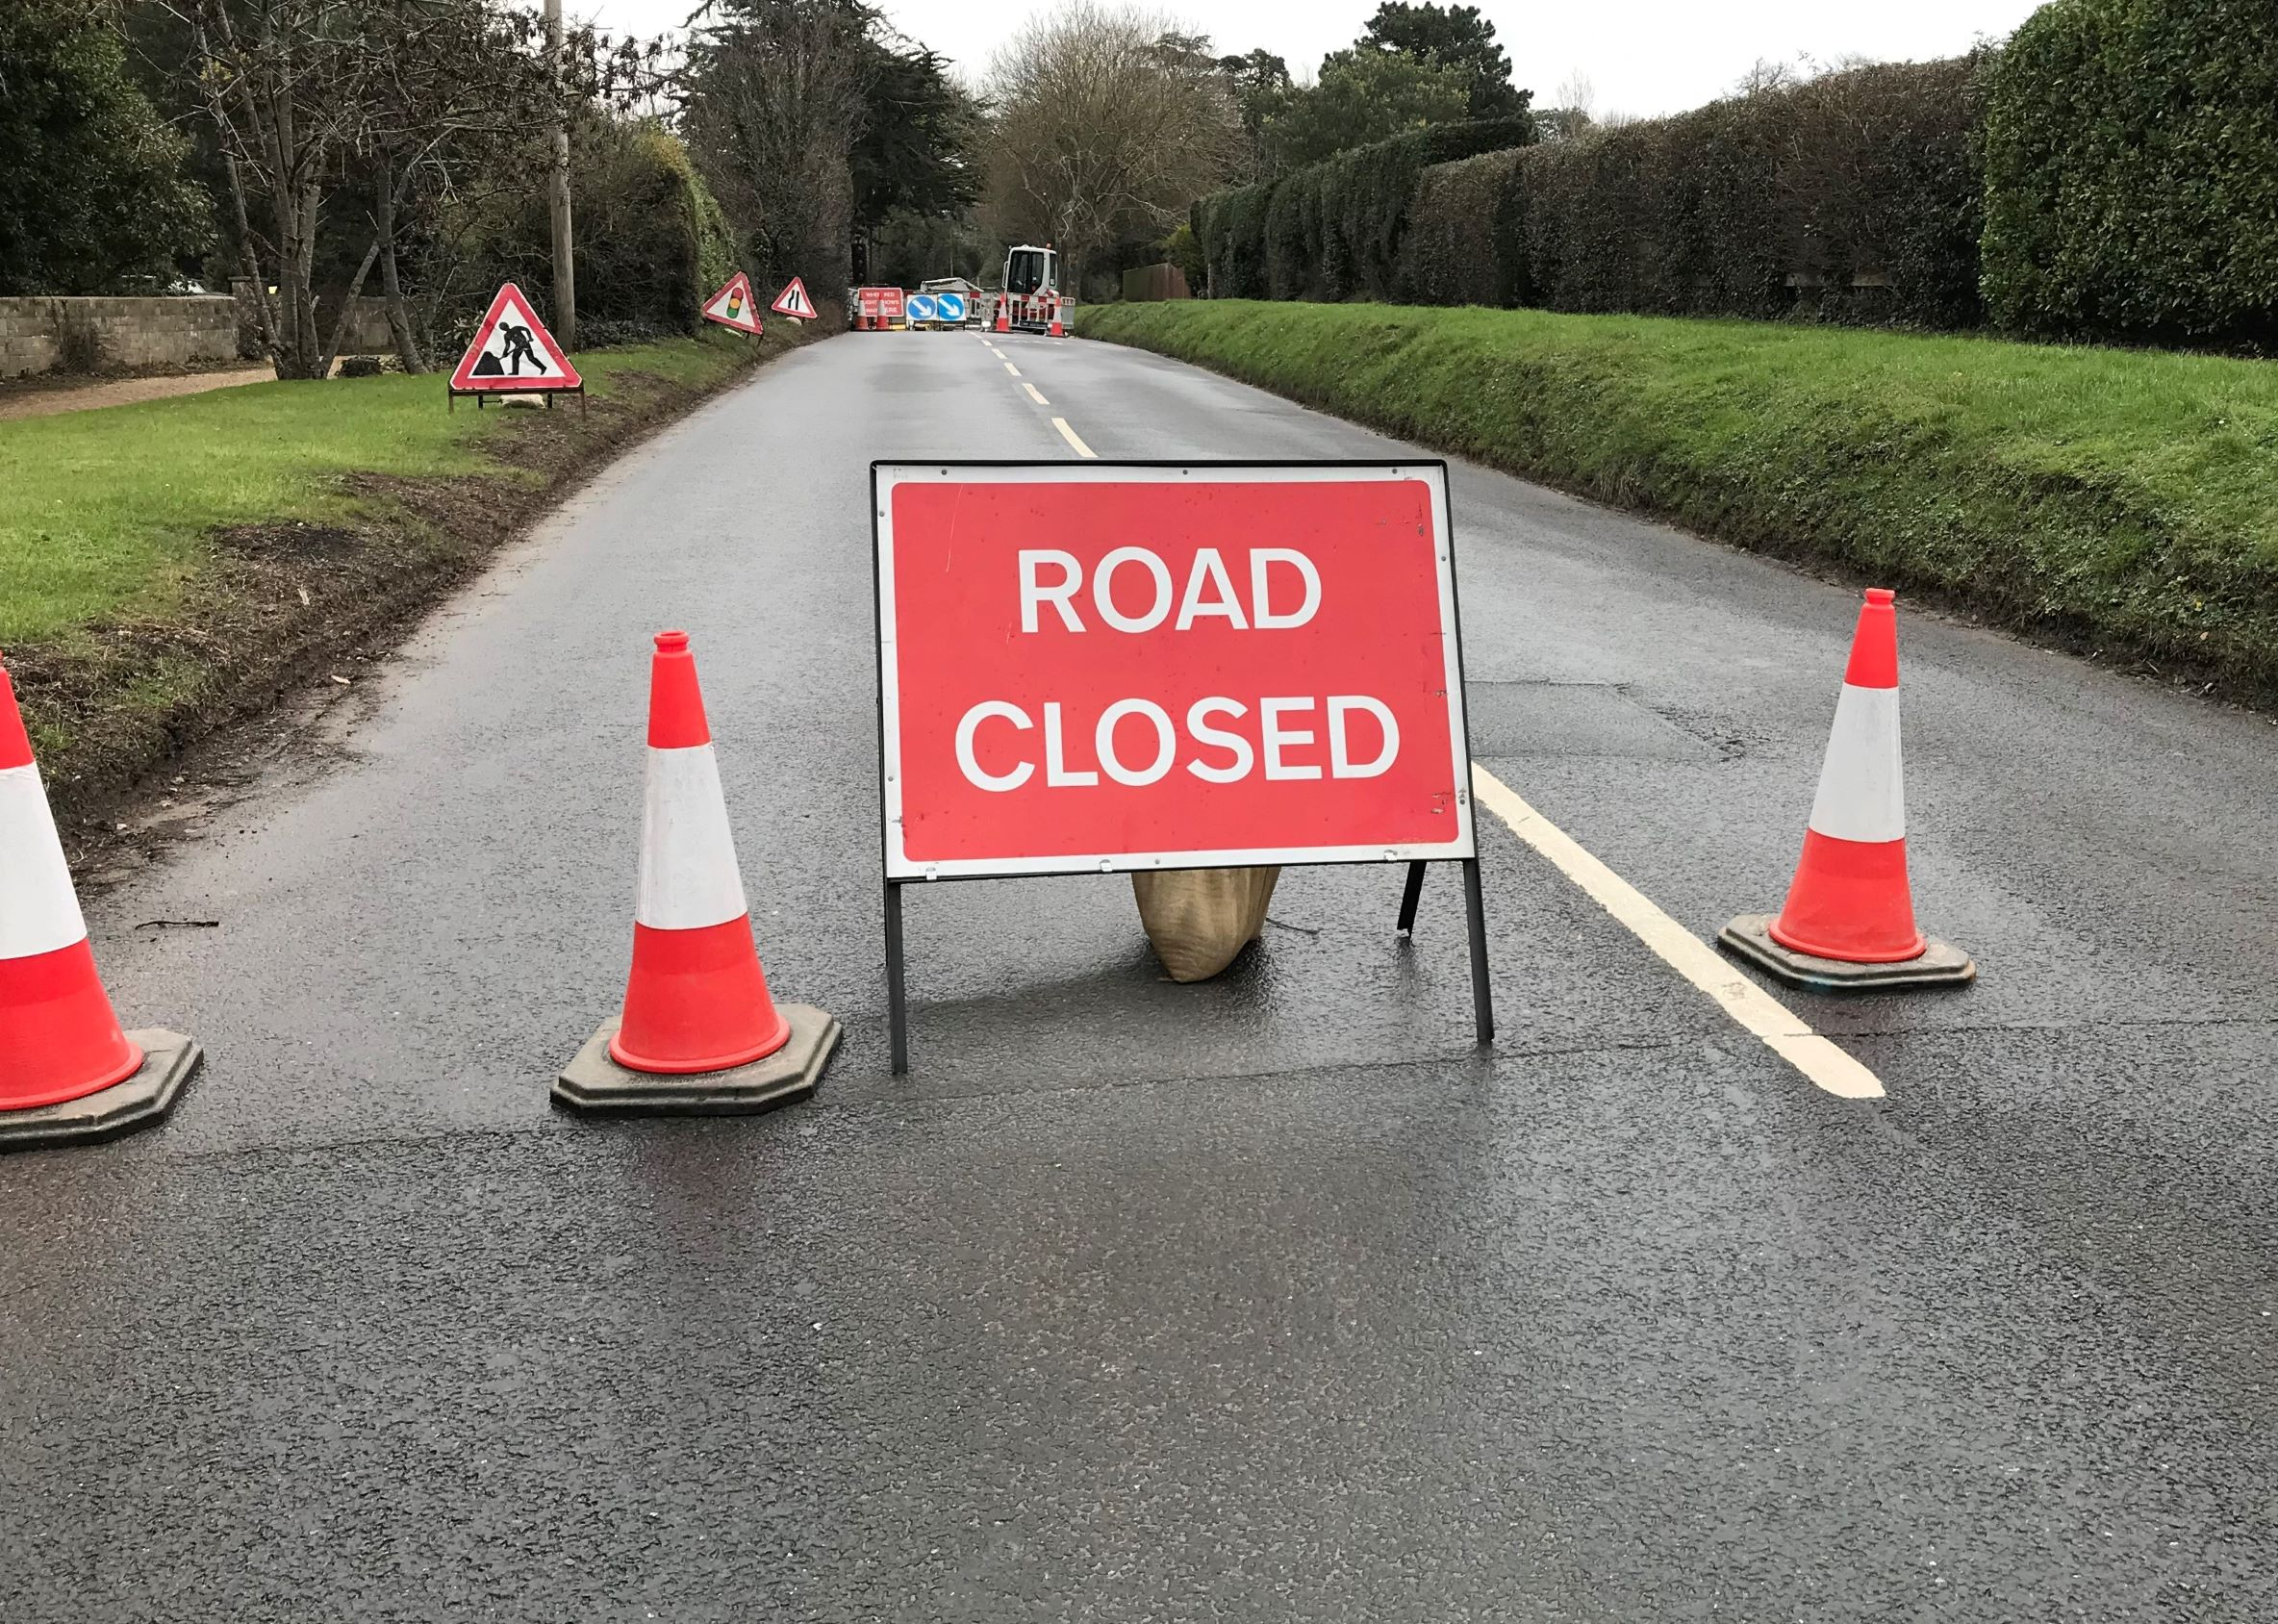 Photo showing road closed sign and traffic cones in the foreground and works equipment and machinery in the background in the middle of the road.